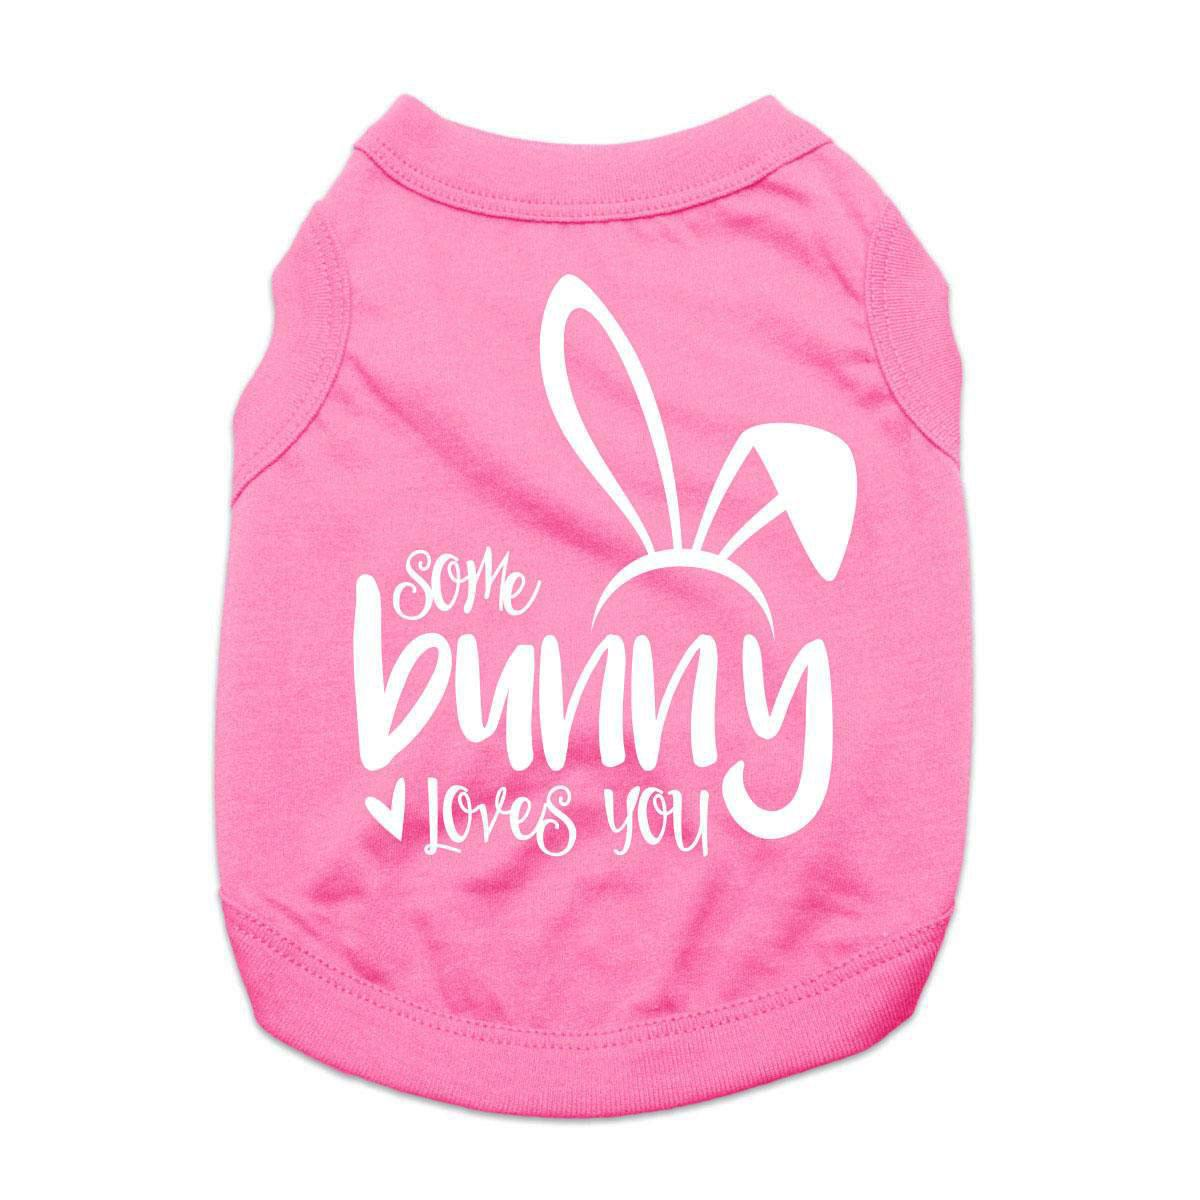 Some Bunny Loves You Dog Shirt - Light Pink